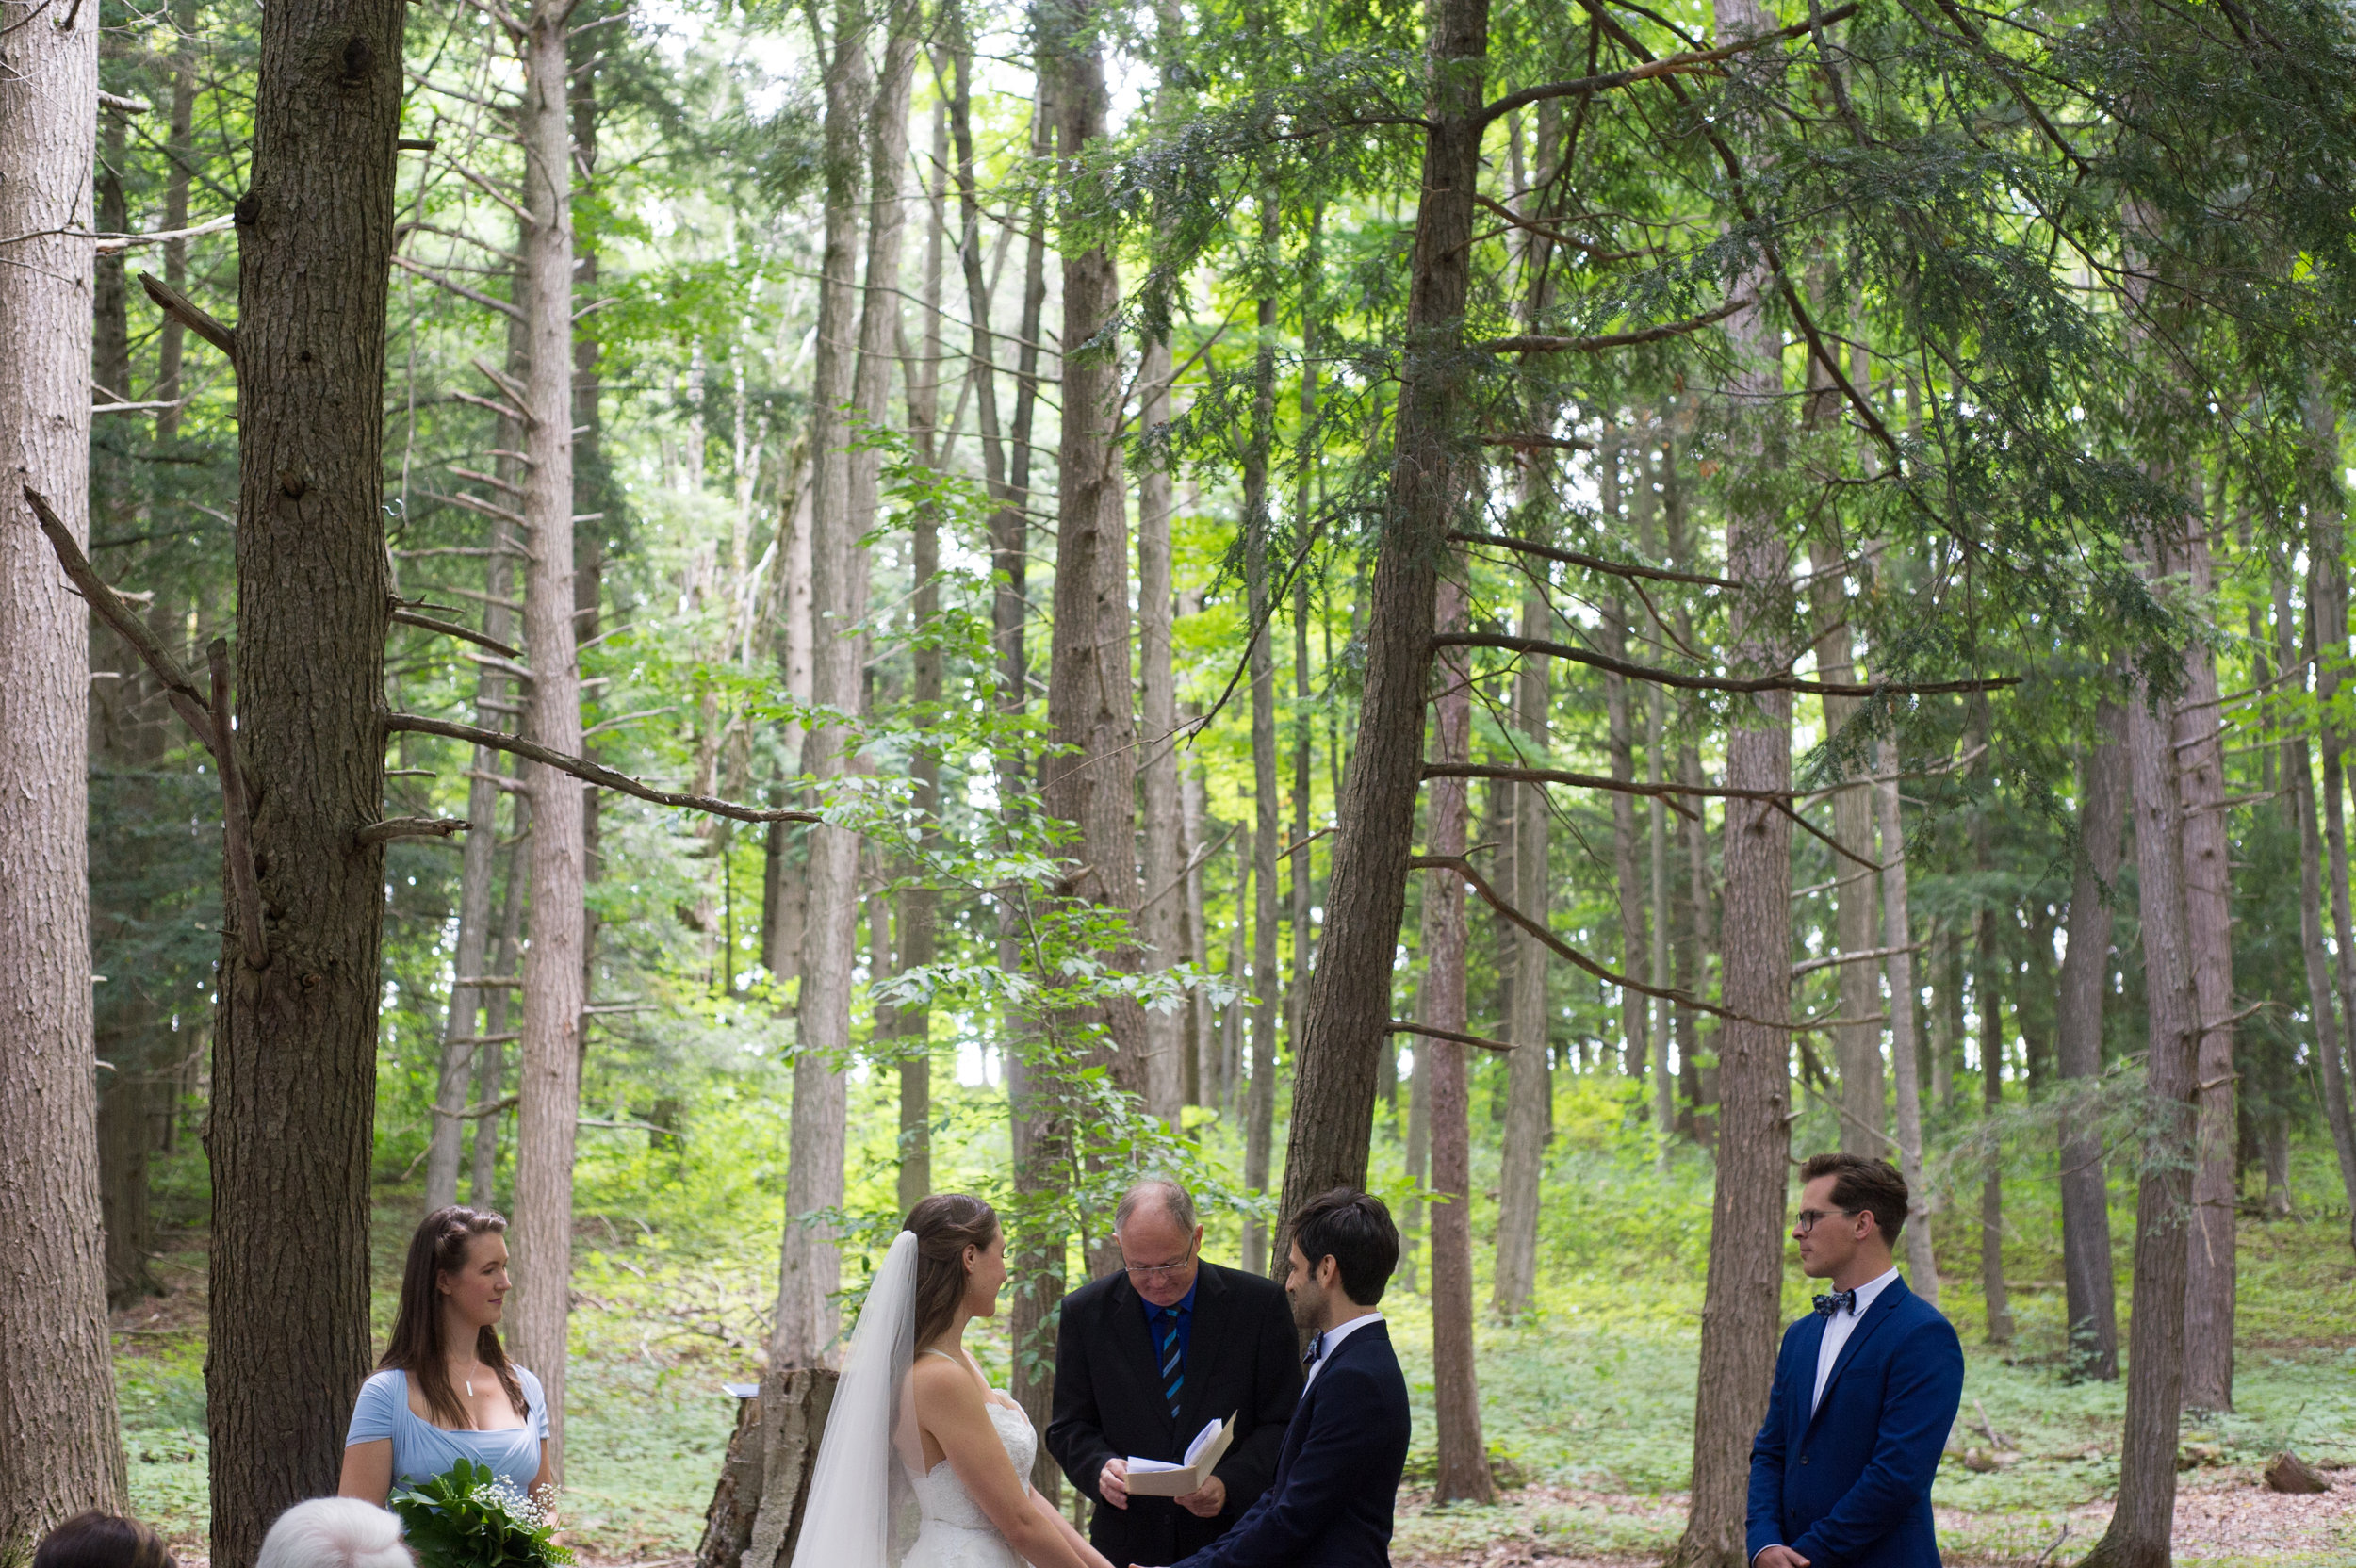 The groom reads his vows. // Wedding photos by Karmel Kreative // Plant Based Bride